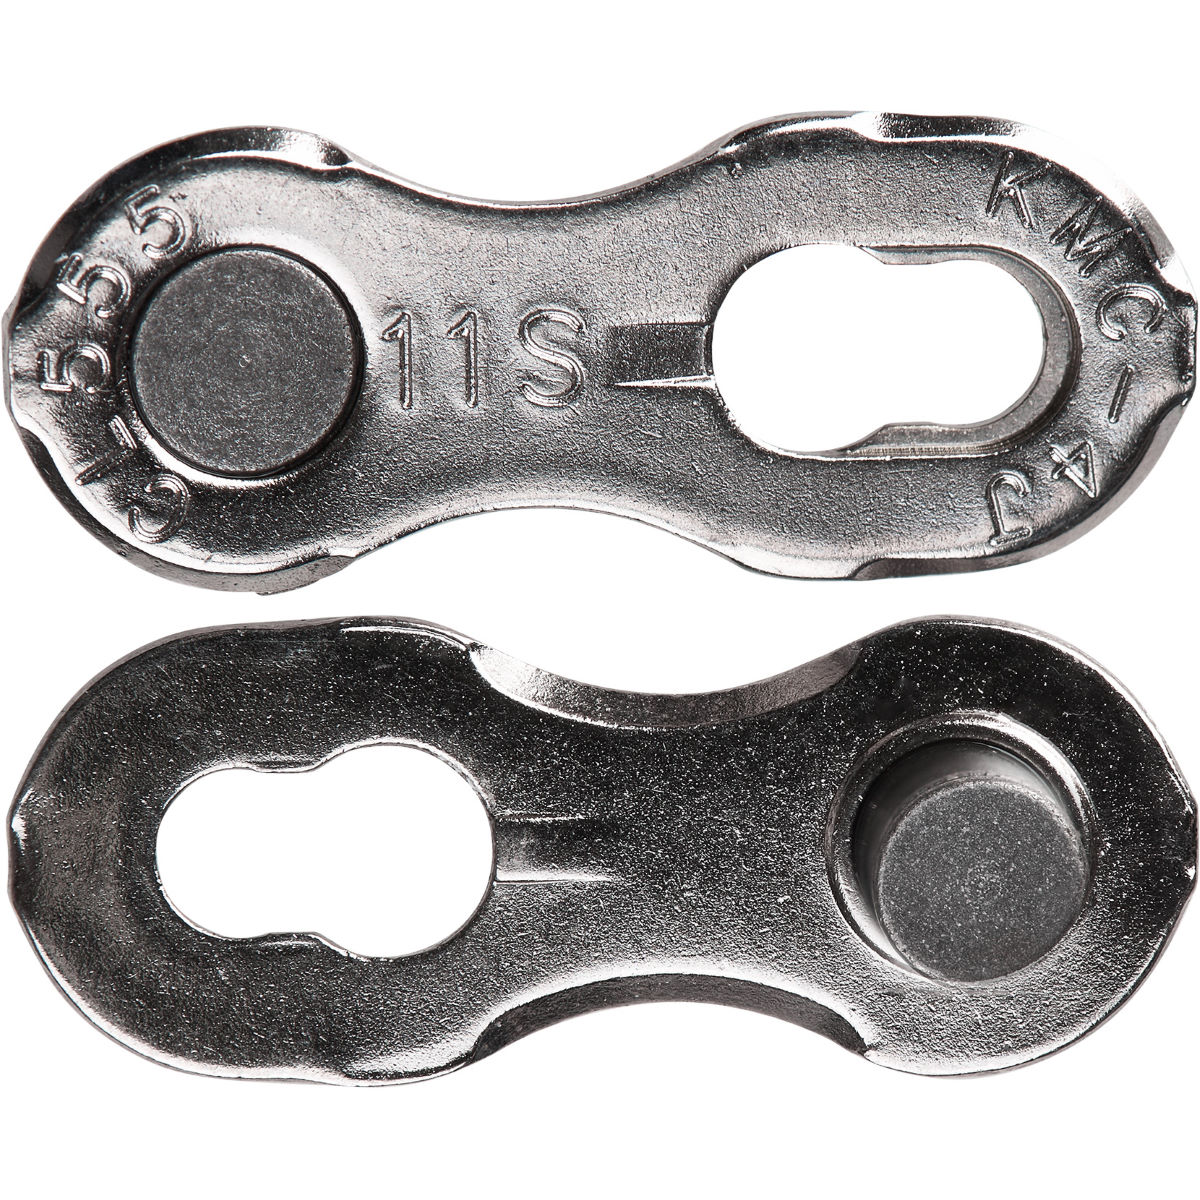 CeramicSpeed CeramicSpeed Chain Connection Link   Chain Links